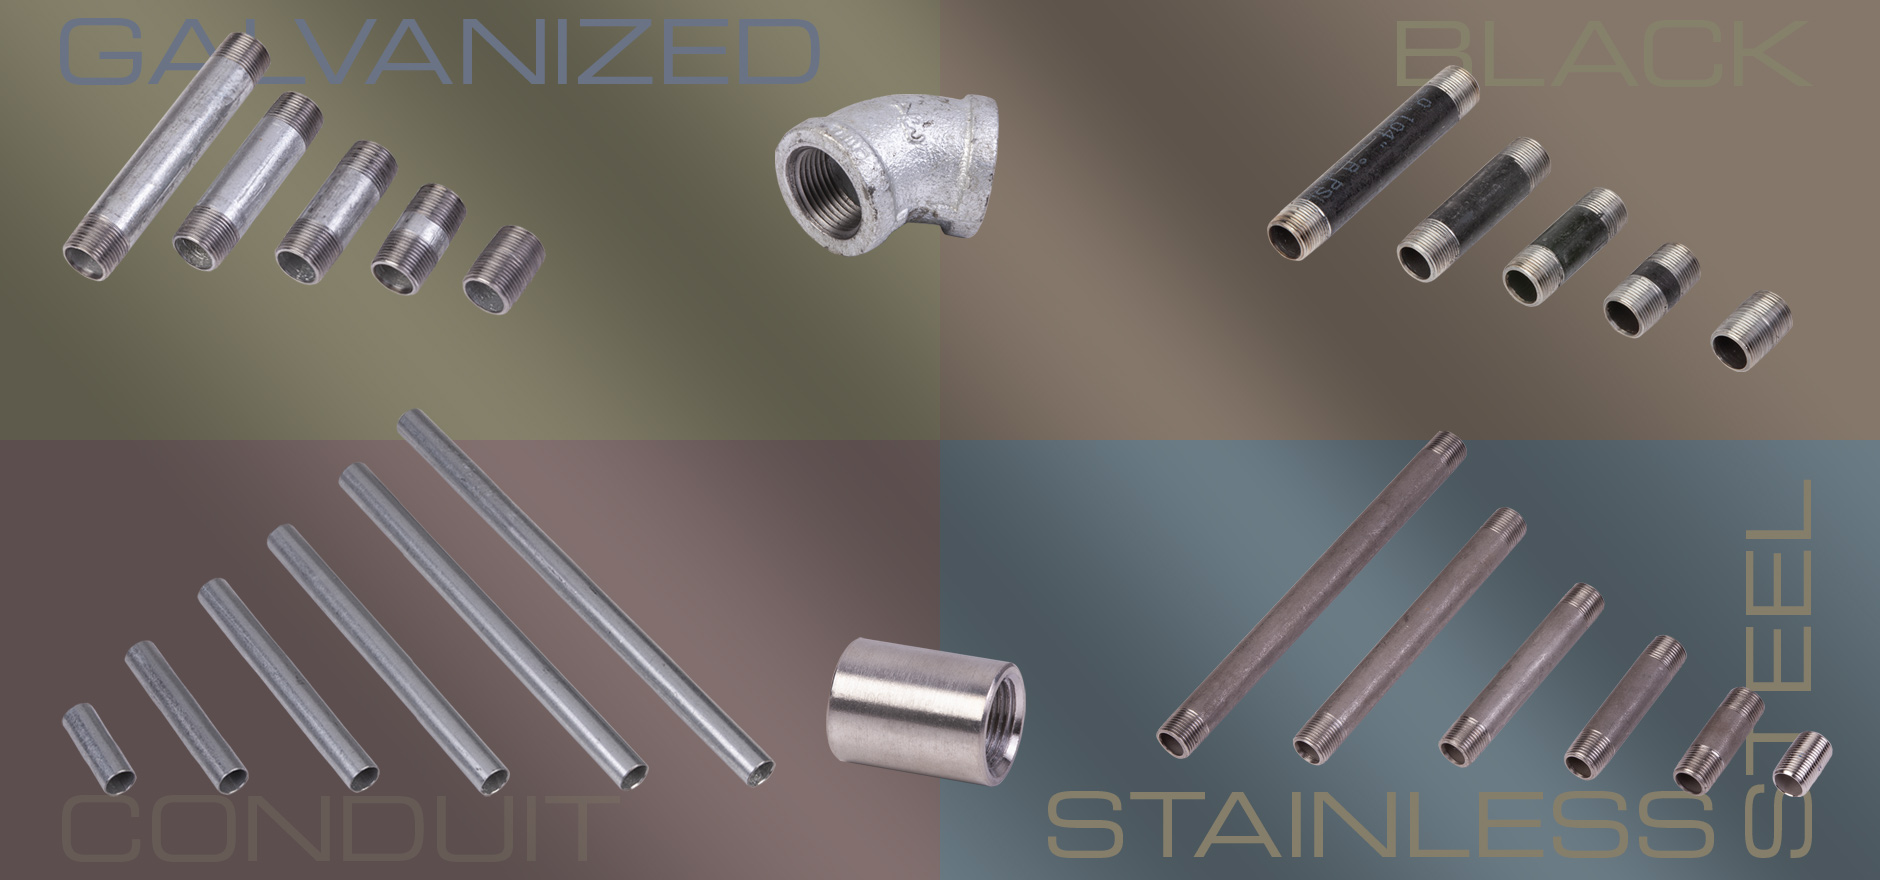 New Stainless Steel, Black, & Galvanized Pipe, Pipe Nipples, Fittings, & Conduit